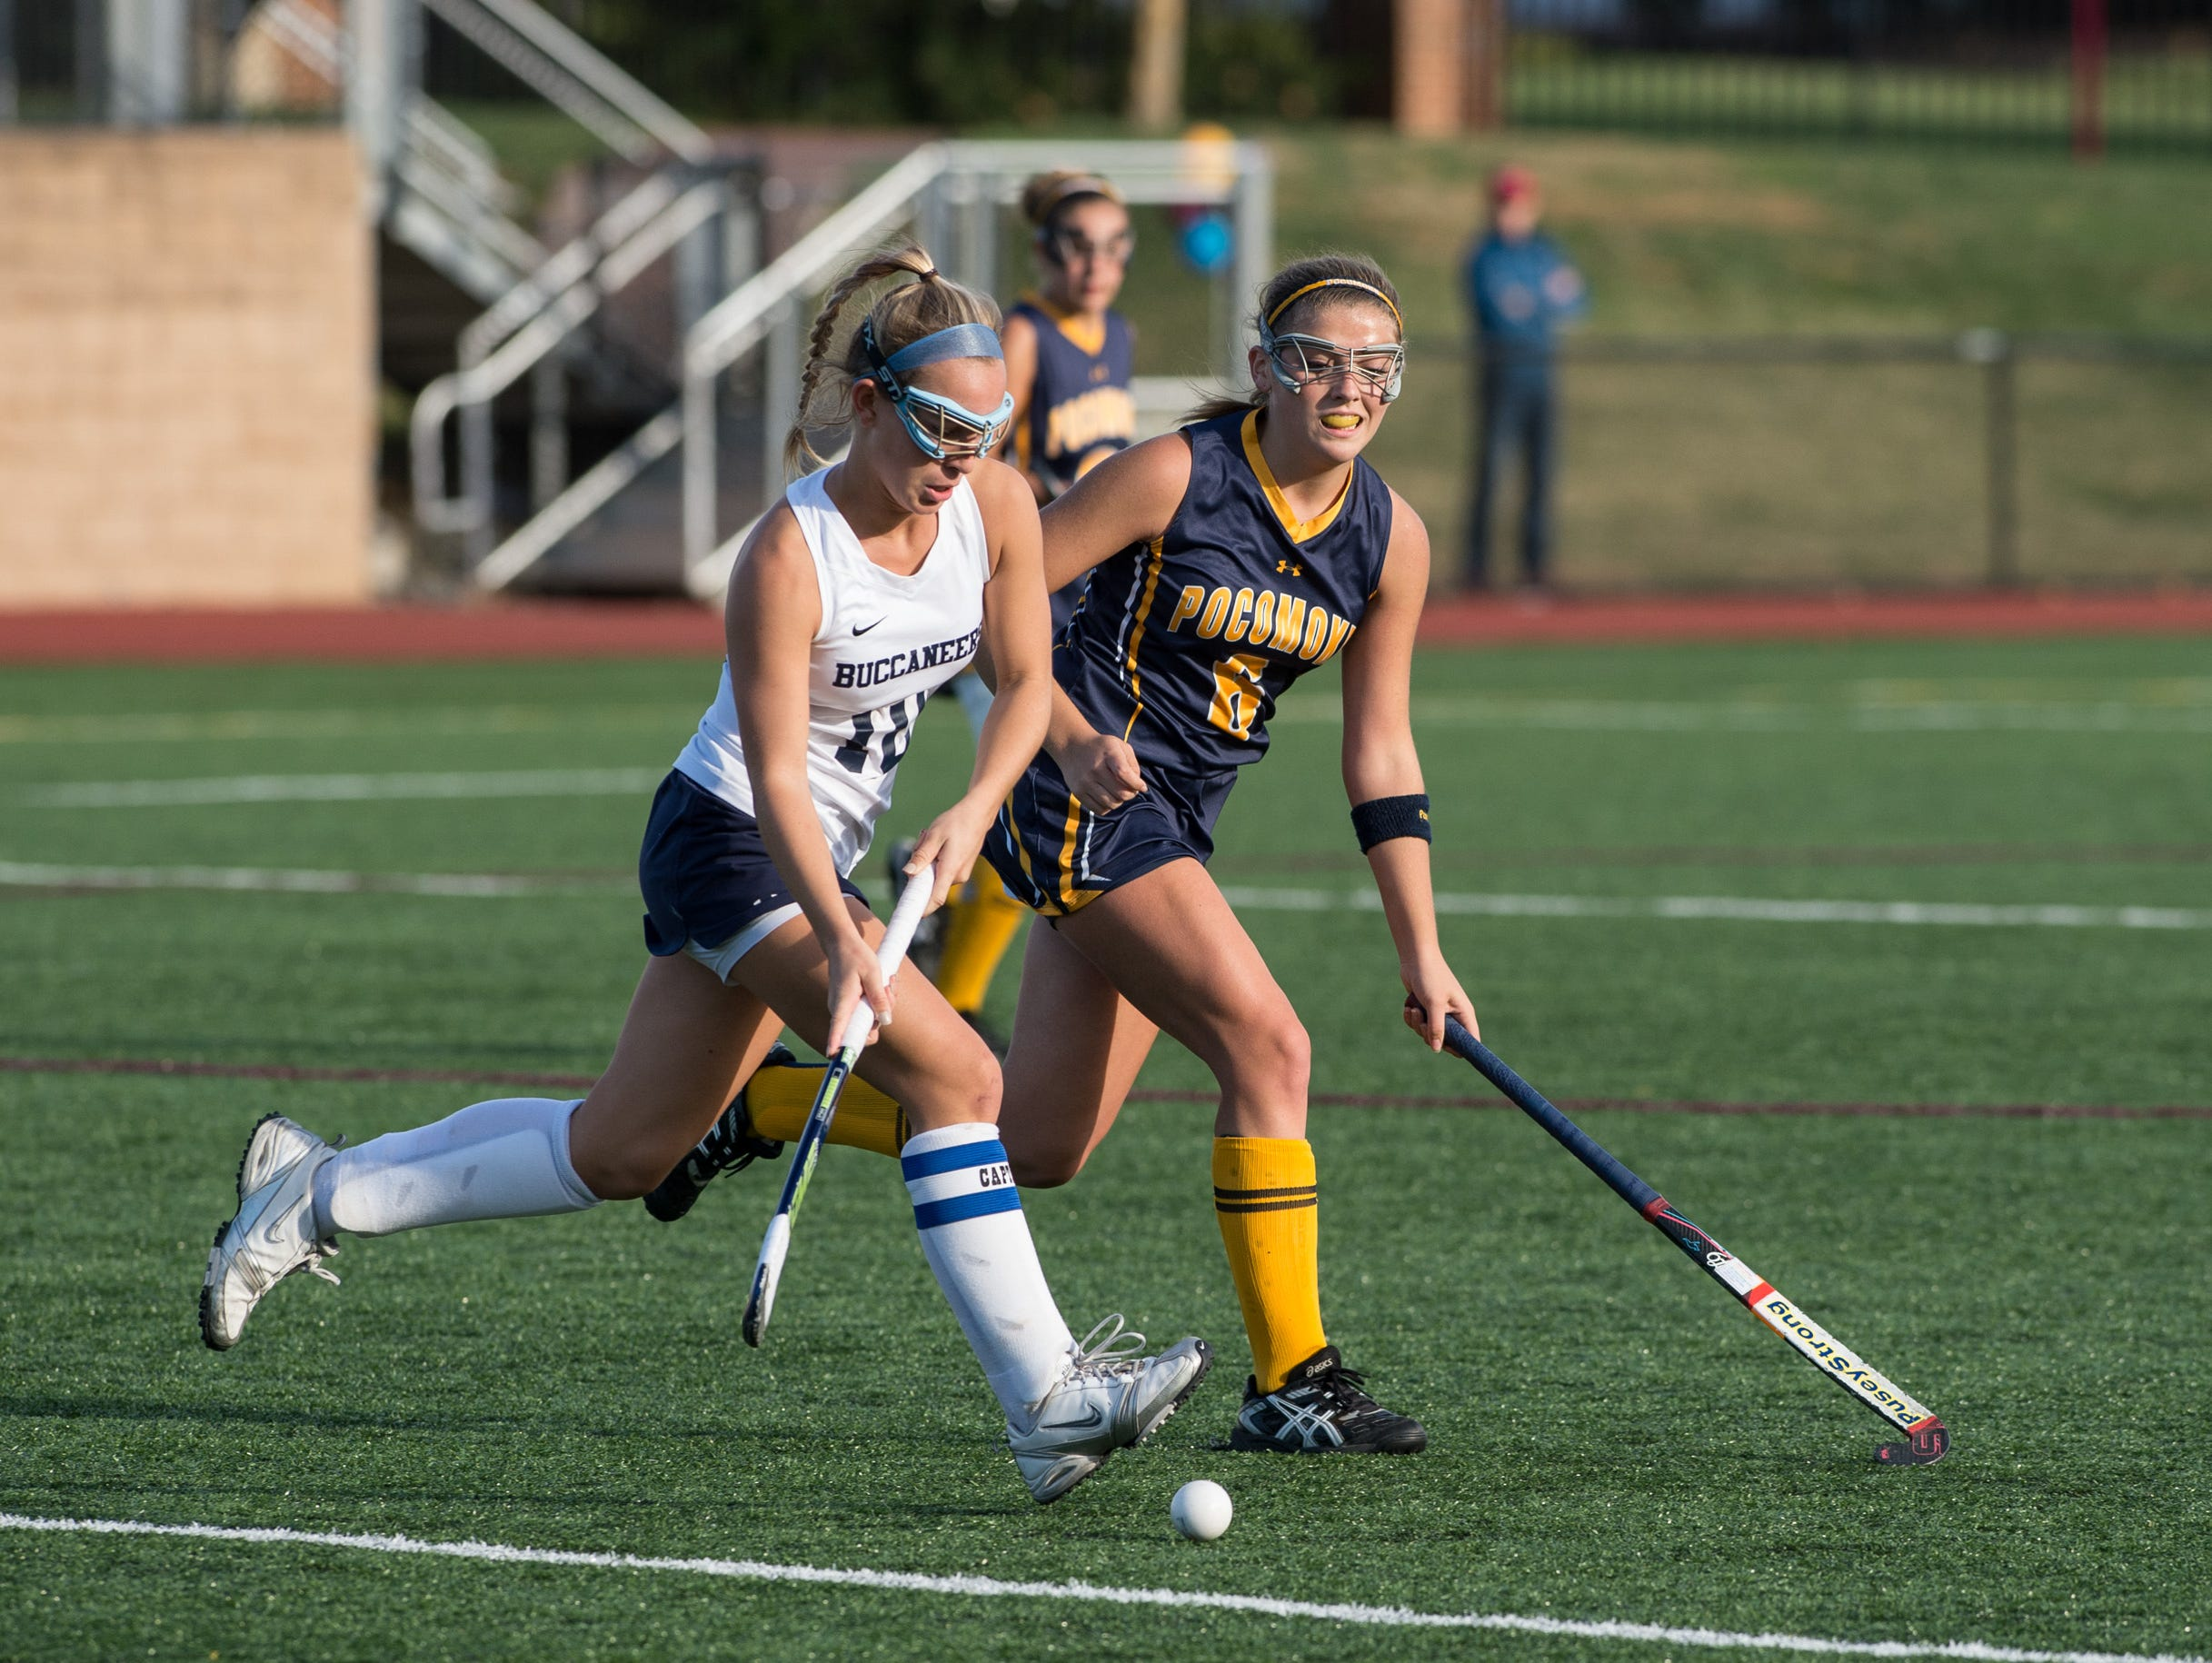 Pocomoke's Kasey Lee attempts to steal the ball against Kent Island's Payton Beach.